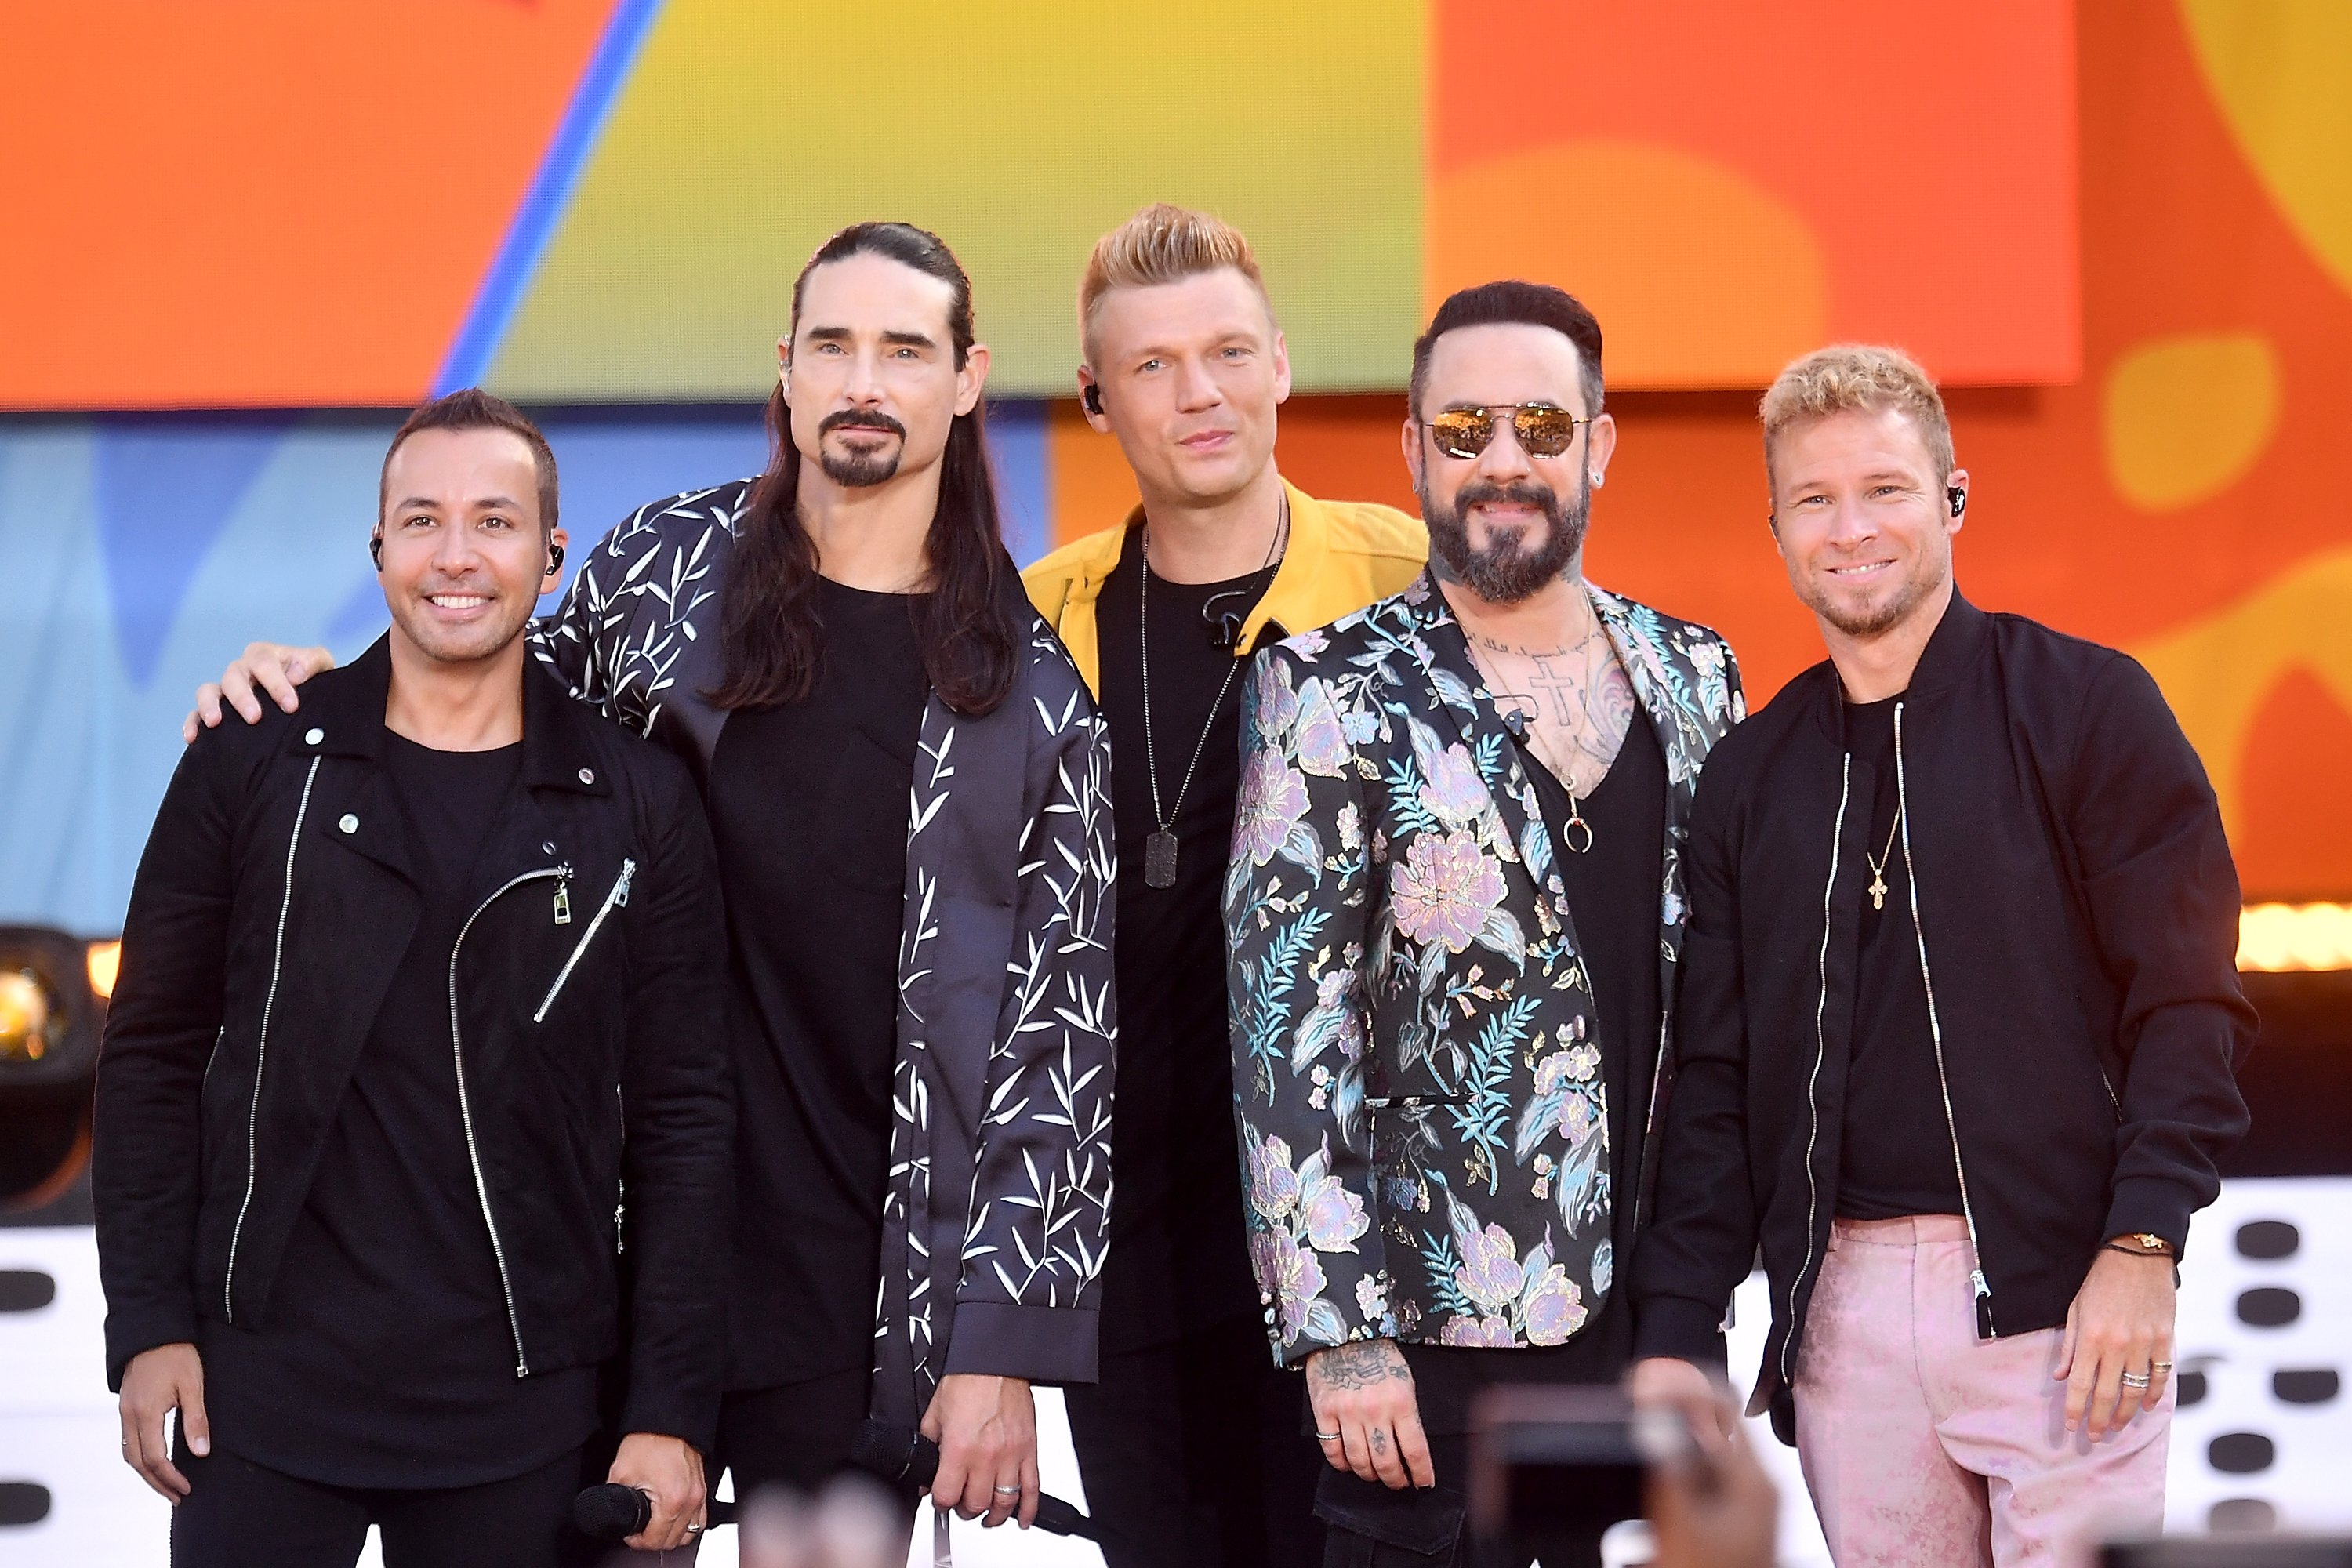 """Howie D., Kevin Richardson, Nick Carter, AJ McLean and Brian Littrell of the Backstreet Boys perform on ABC's """"Good Morning America"""" at SummerStage at Rumsey Playfield, Central Park on July 13, 2018, in New York City. 